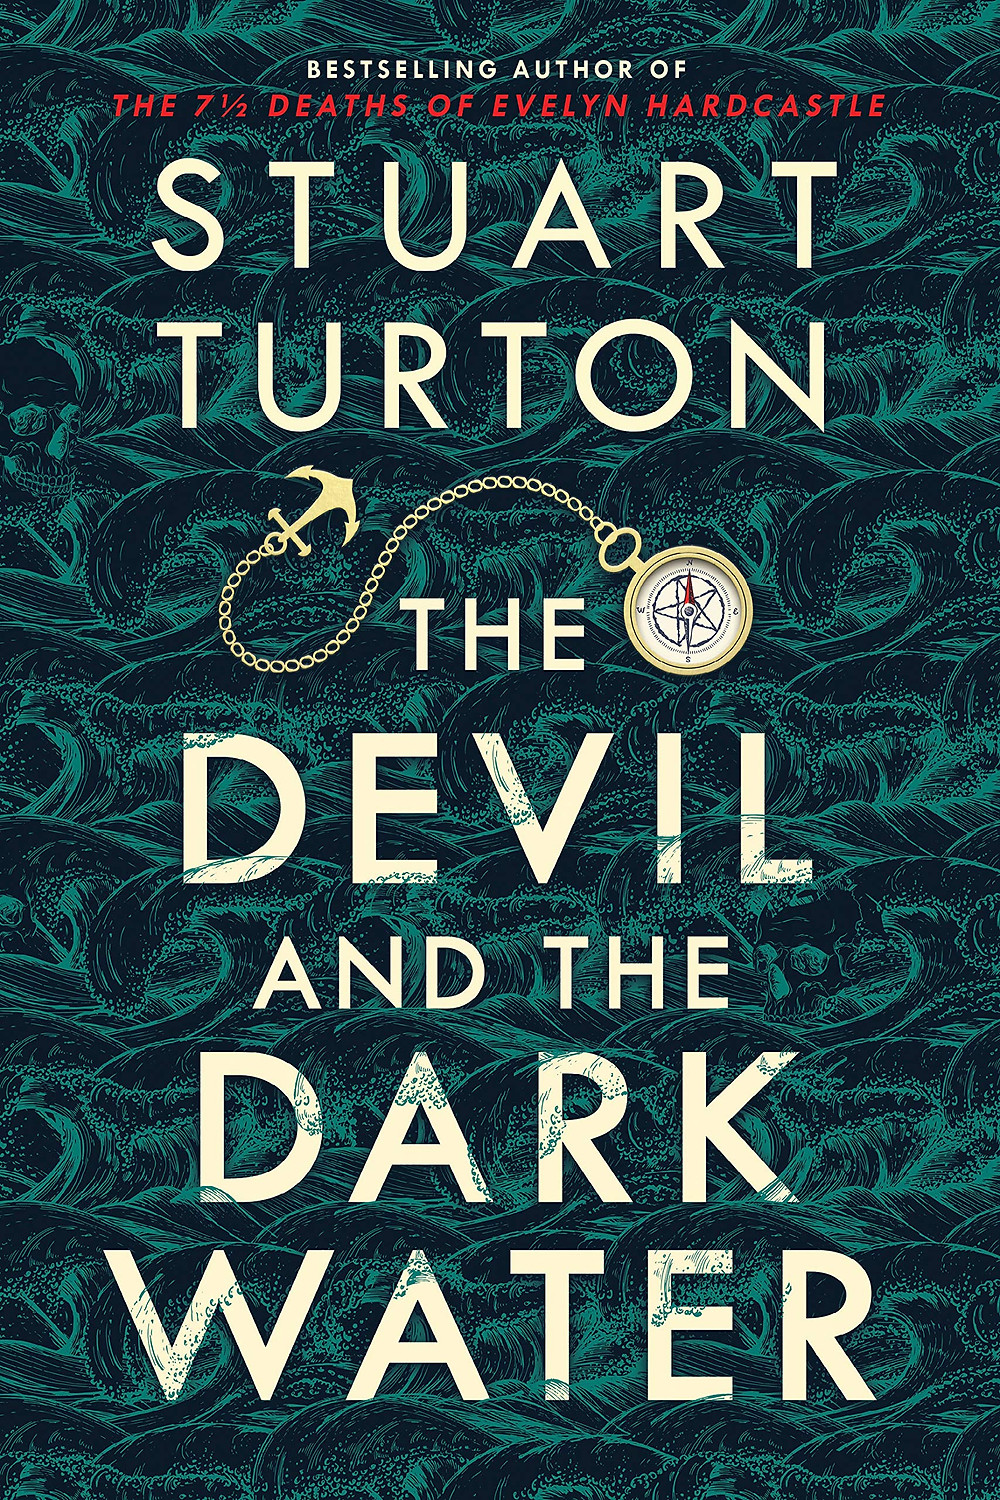 The Devil and the Dark Water by Stuart Turton | Top 5 Book Quotes